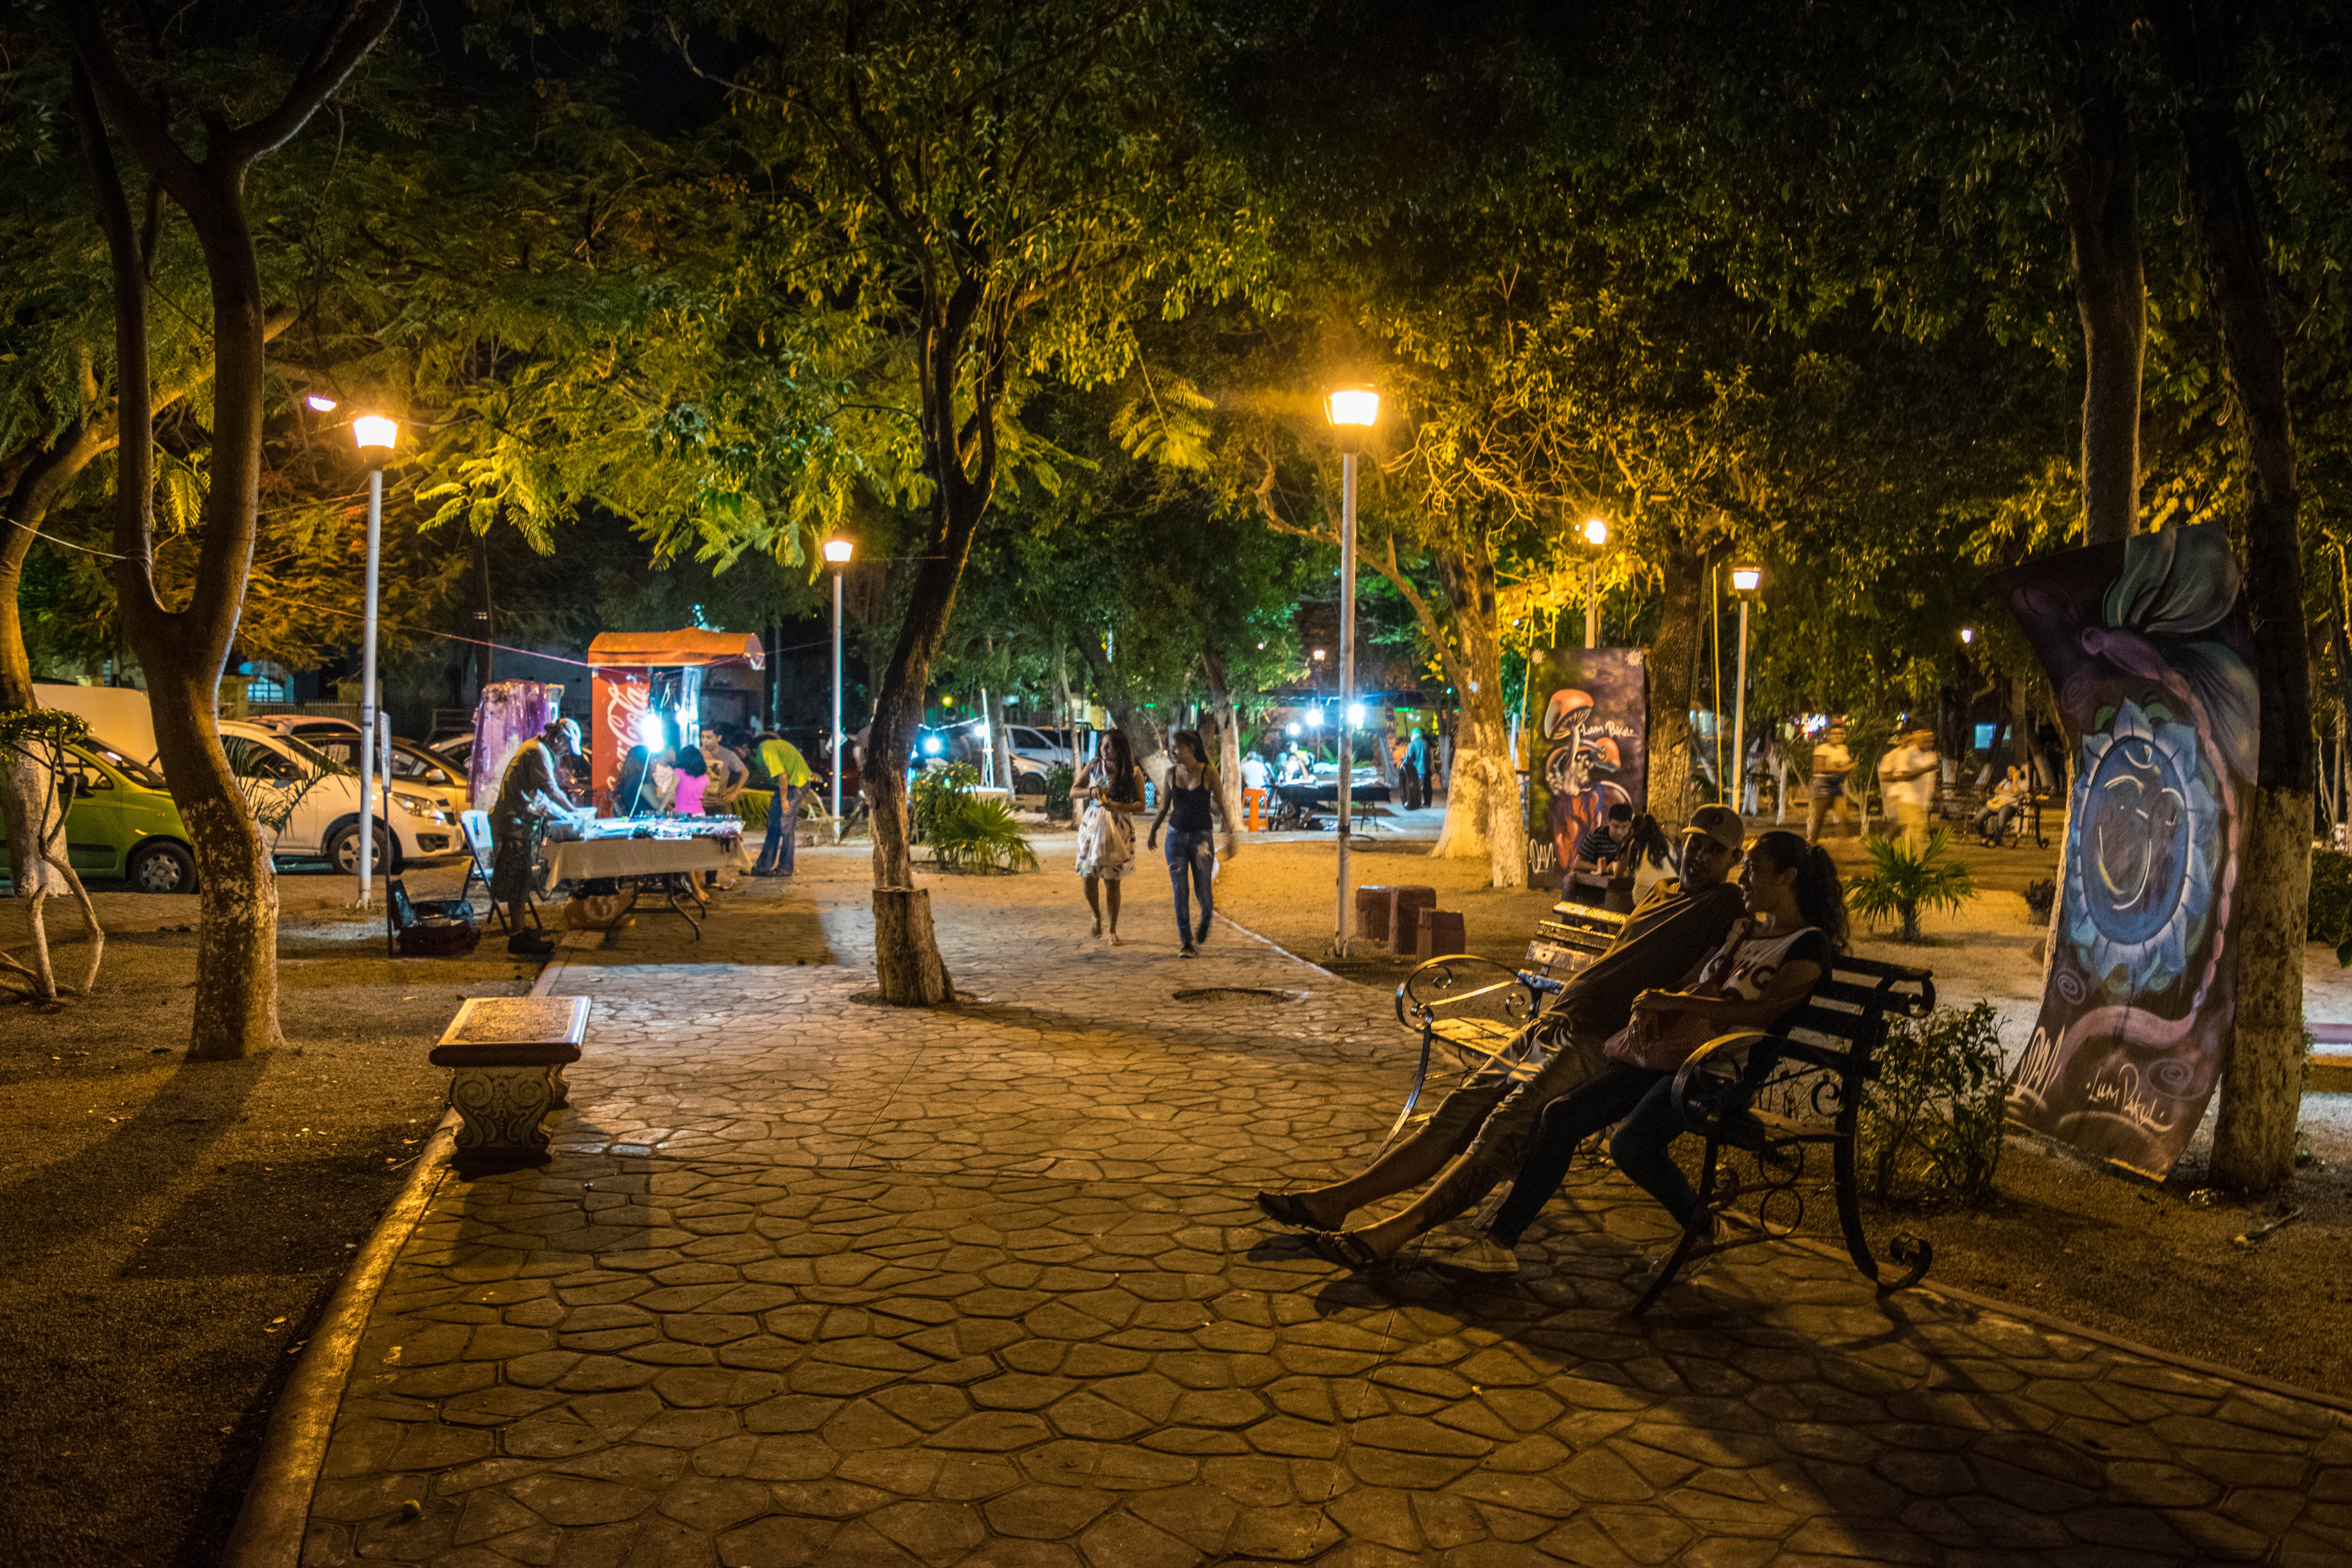 Hippy Park in Cancun